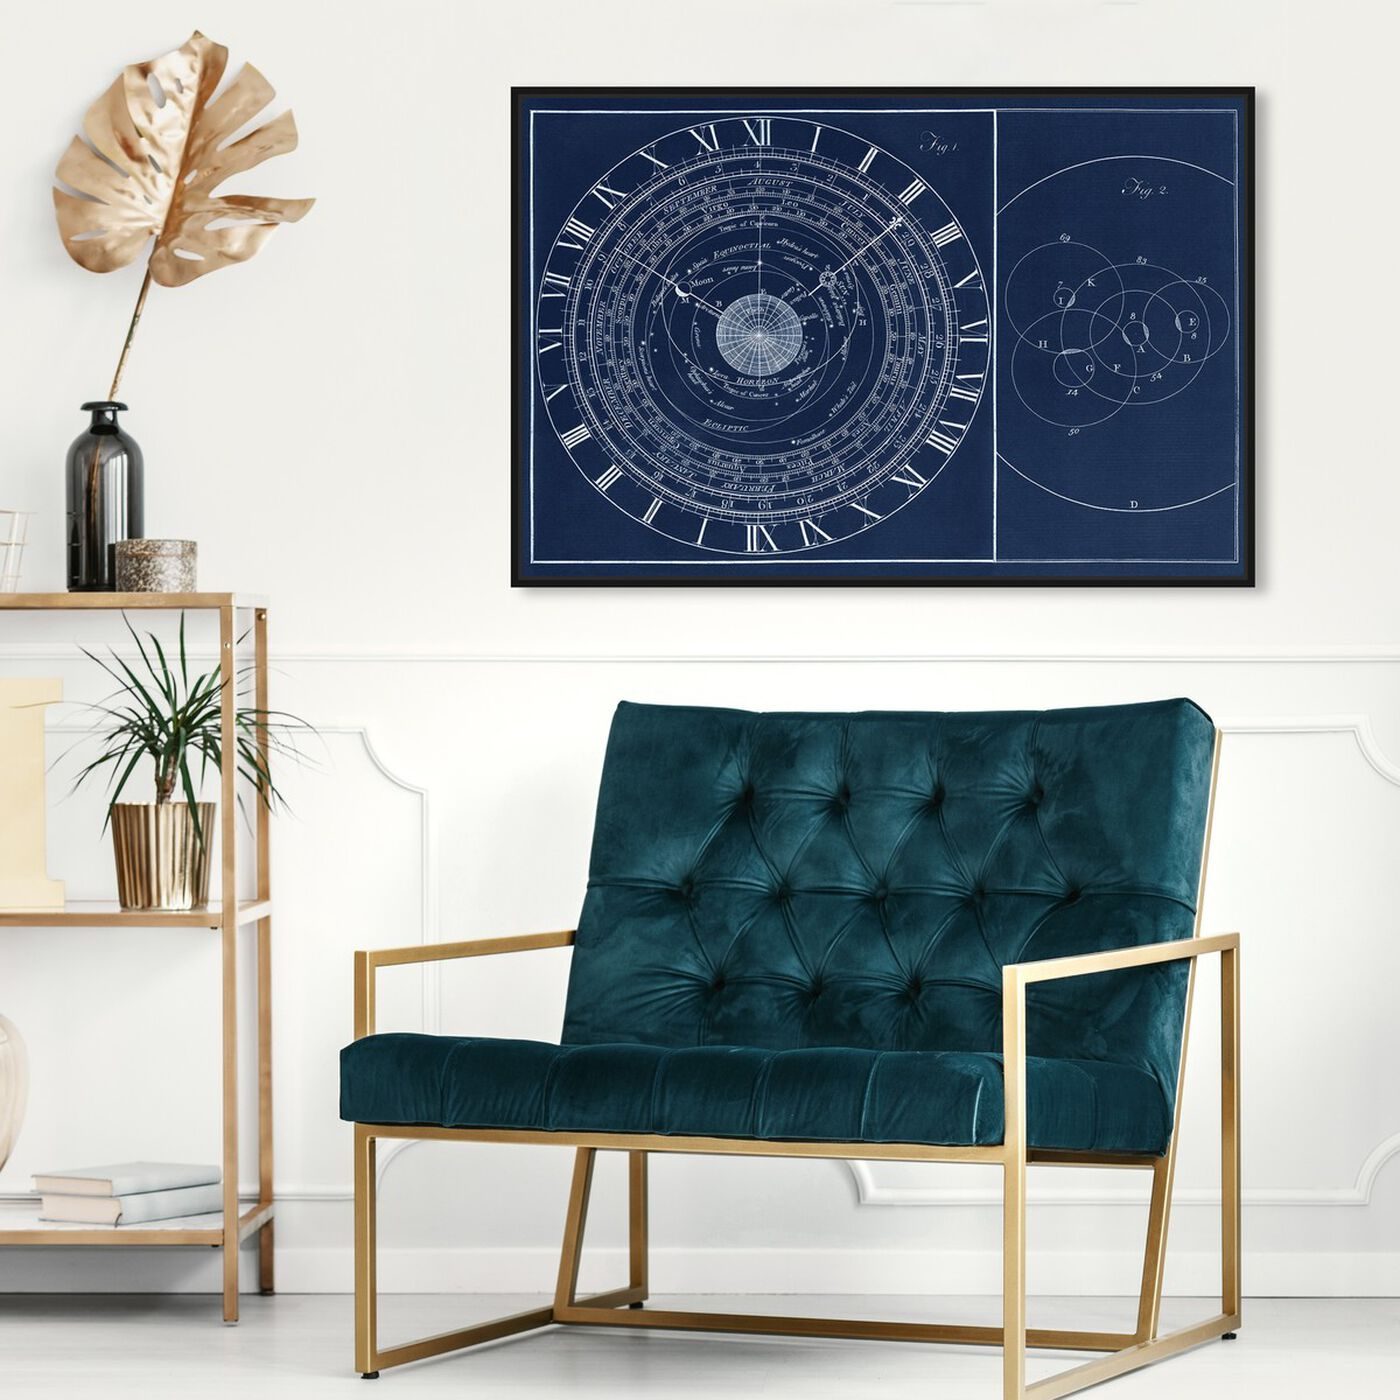 Hanging view of Astronomical Clock featuring astronomy and space and constellations art.